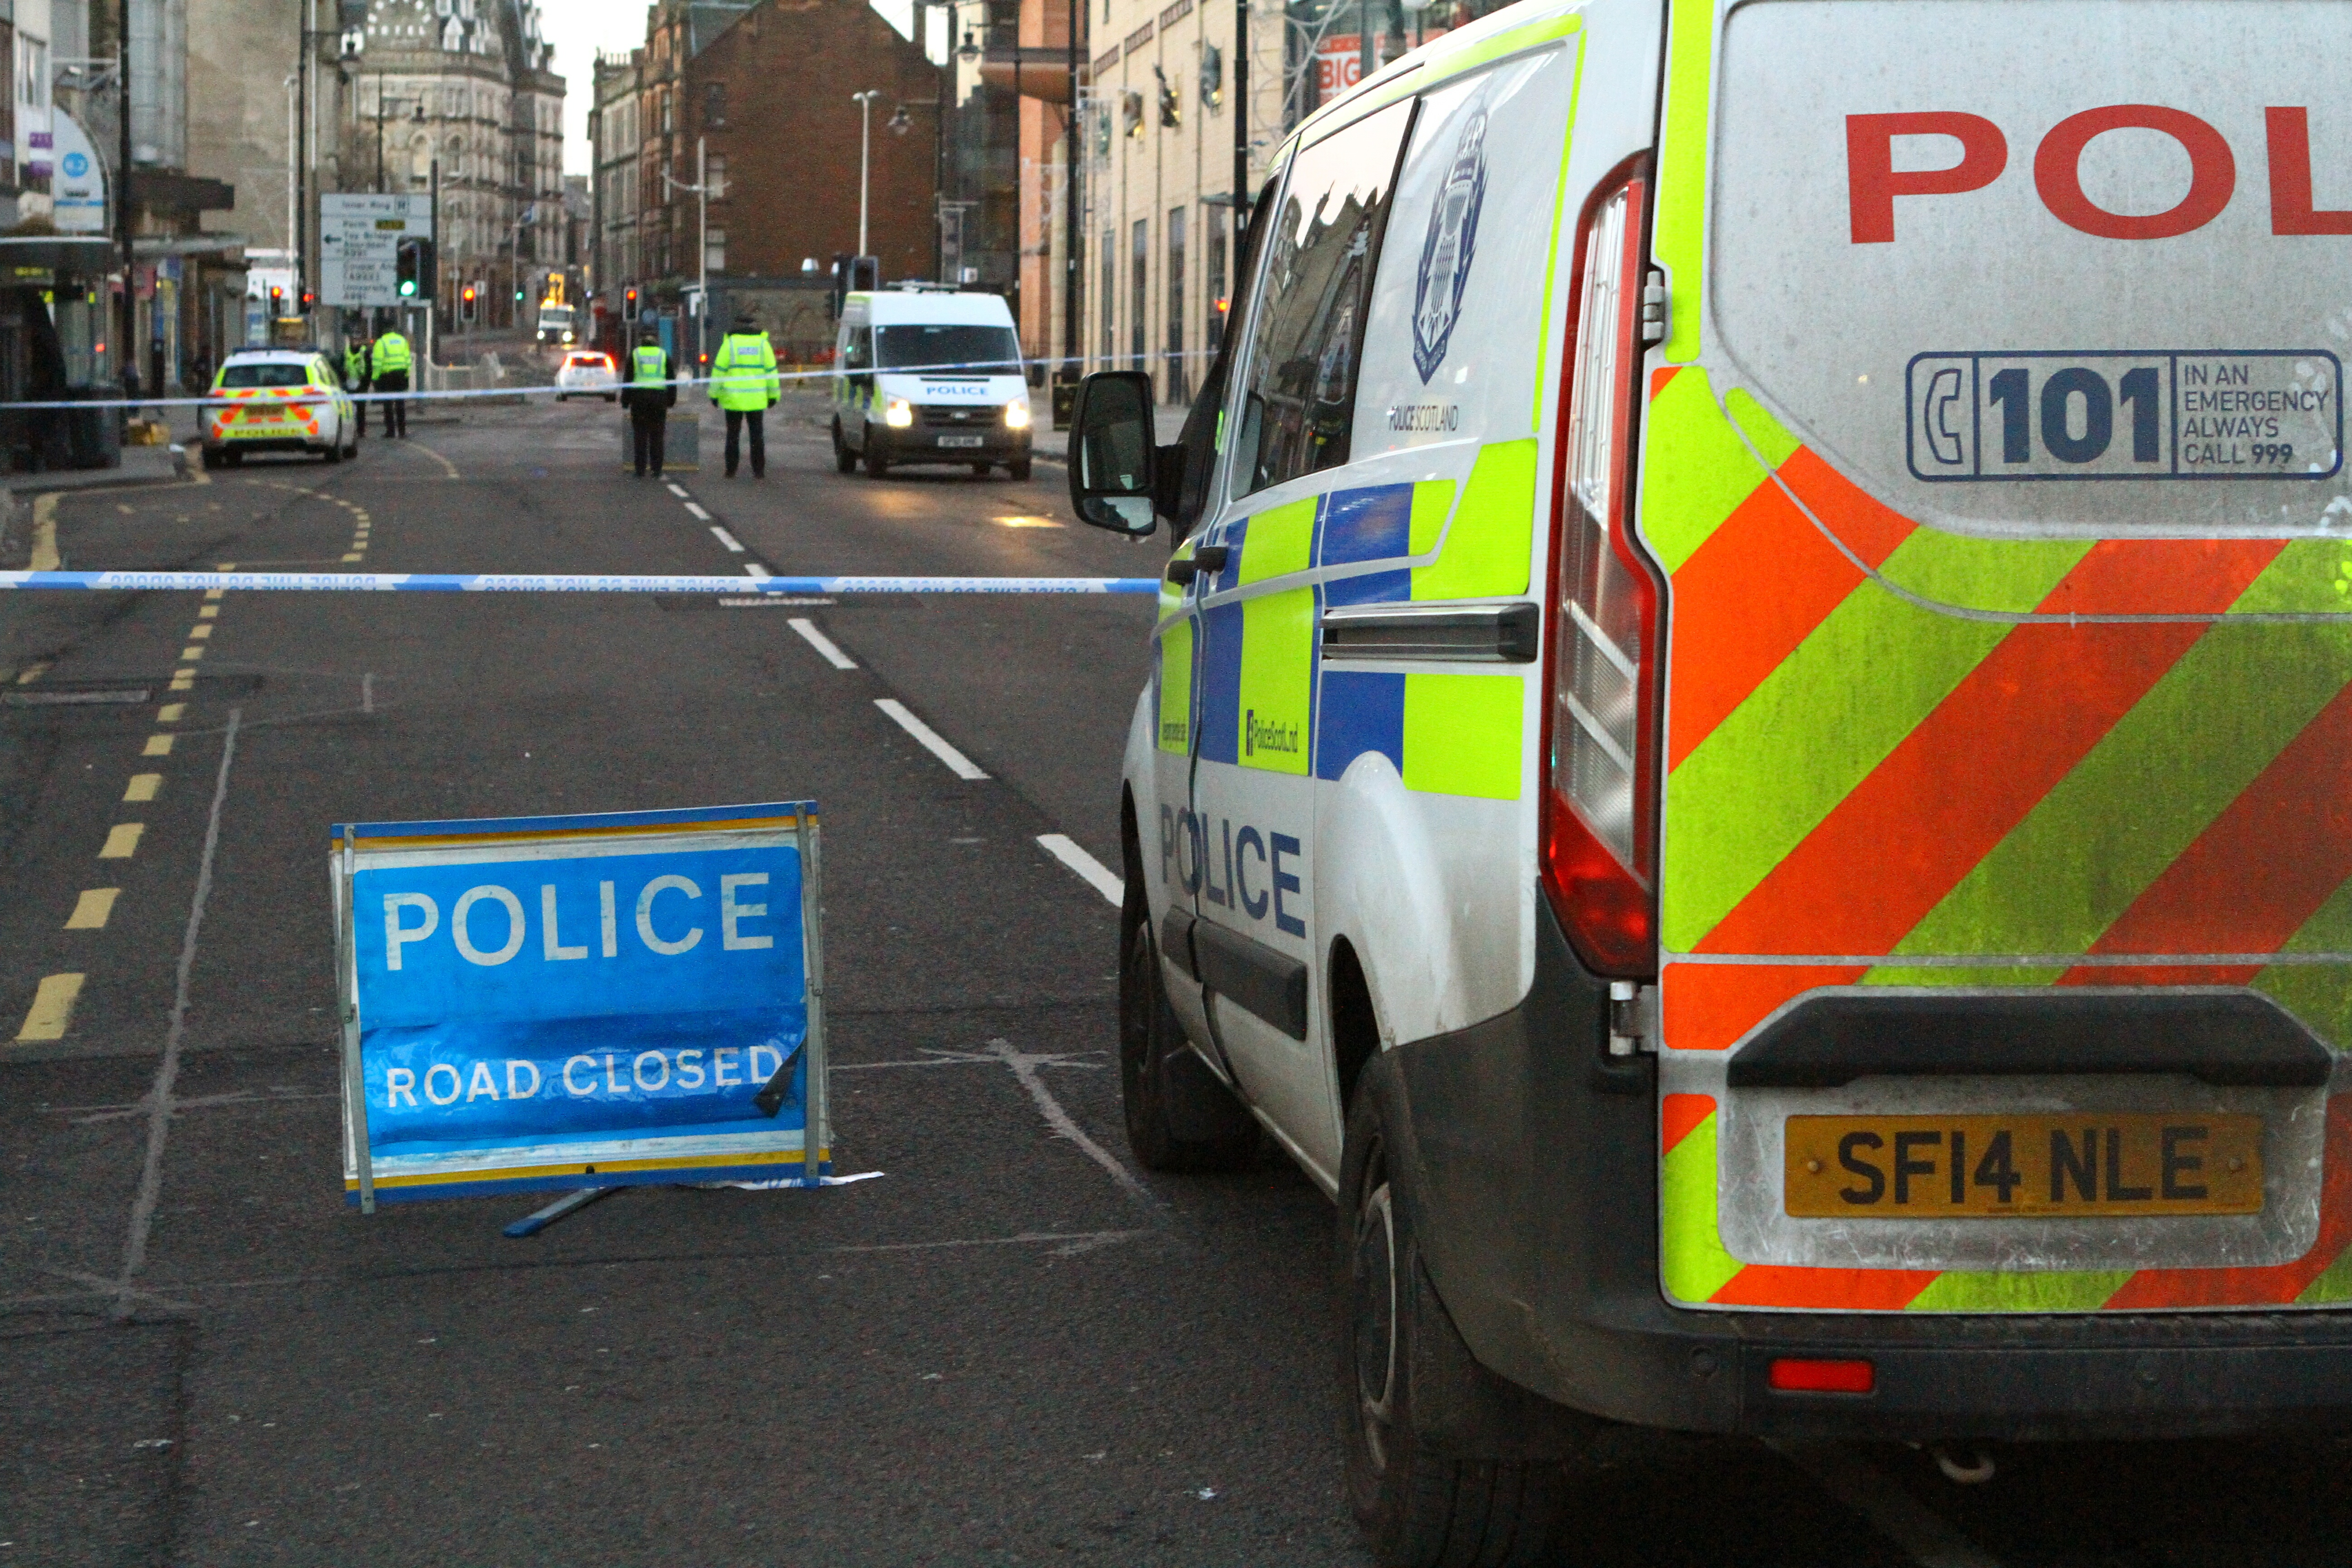 Police on the scene at Nethergate